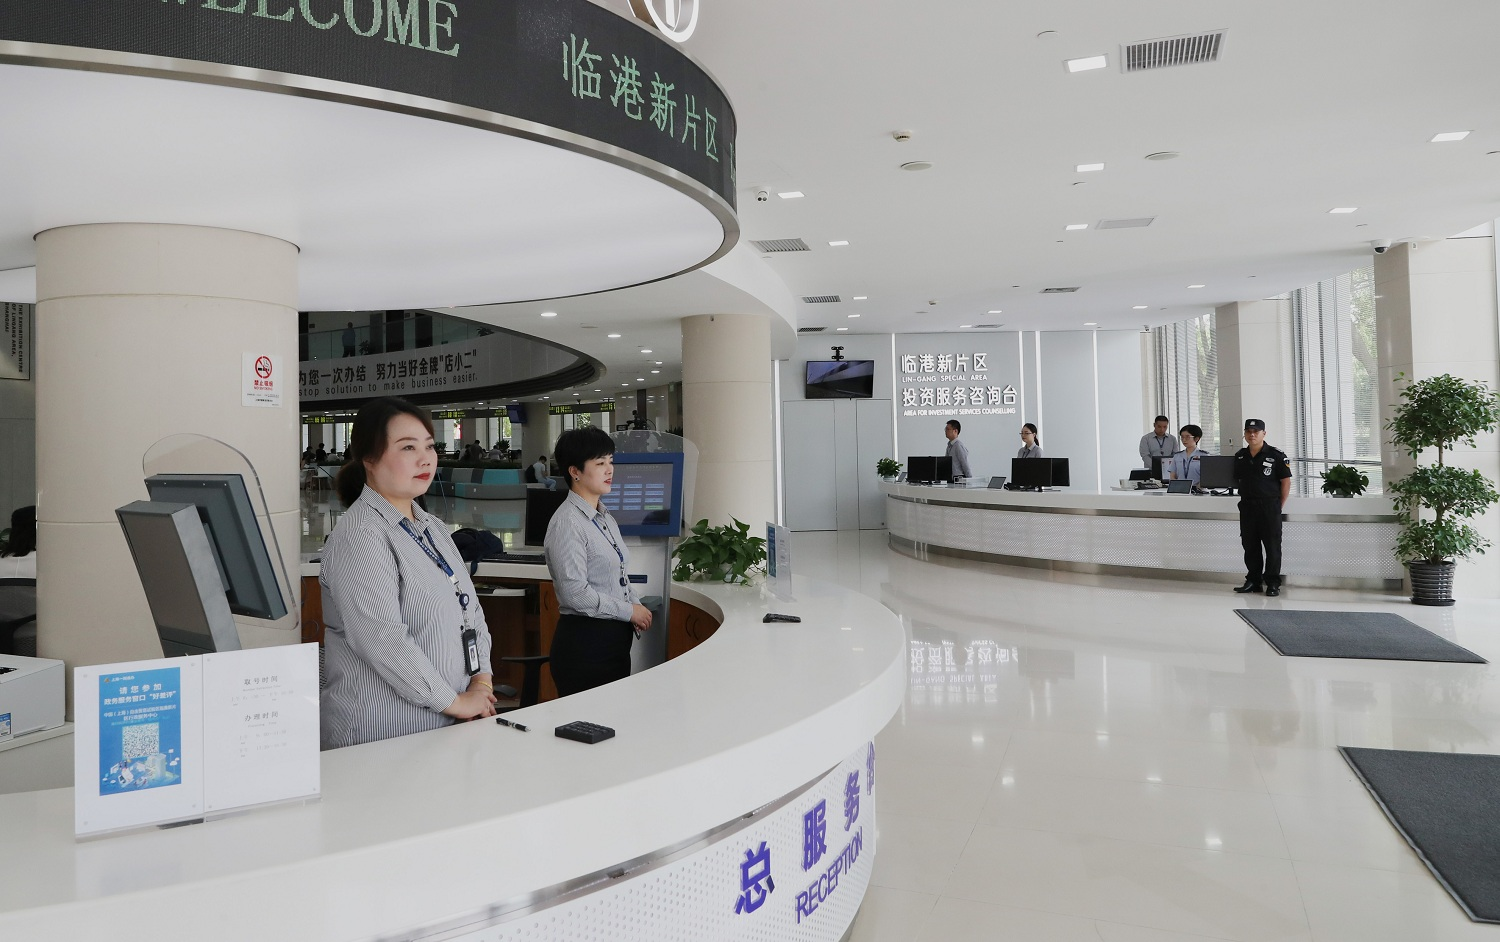 an interior view of an administrative service center at the Lingang area of the China Shanghai Pilot Free Trade Zone